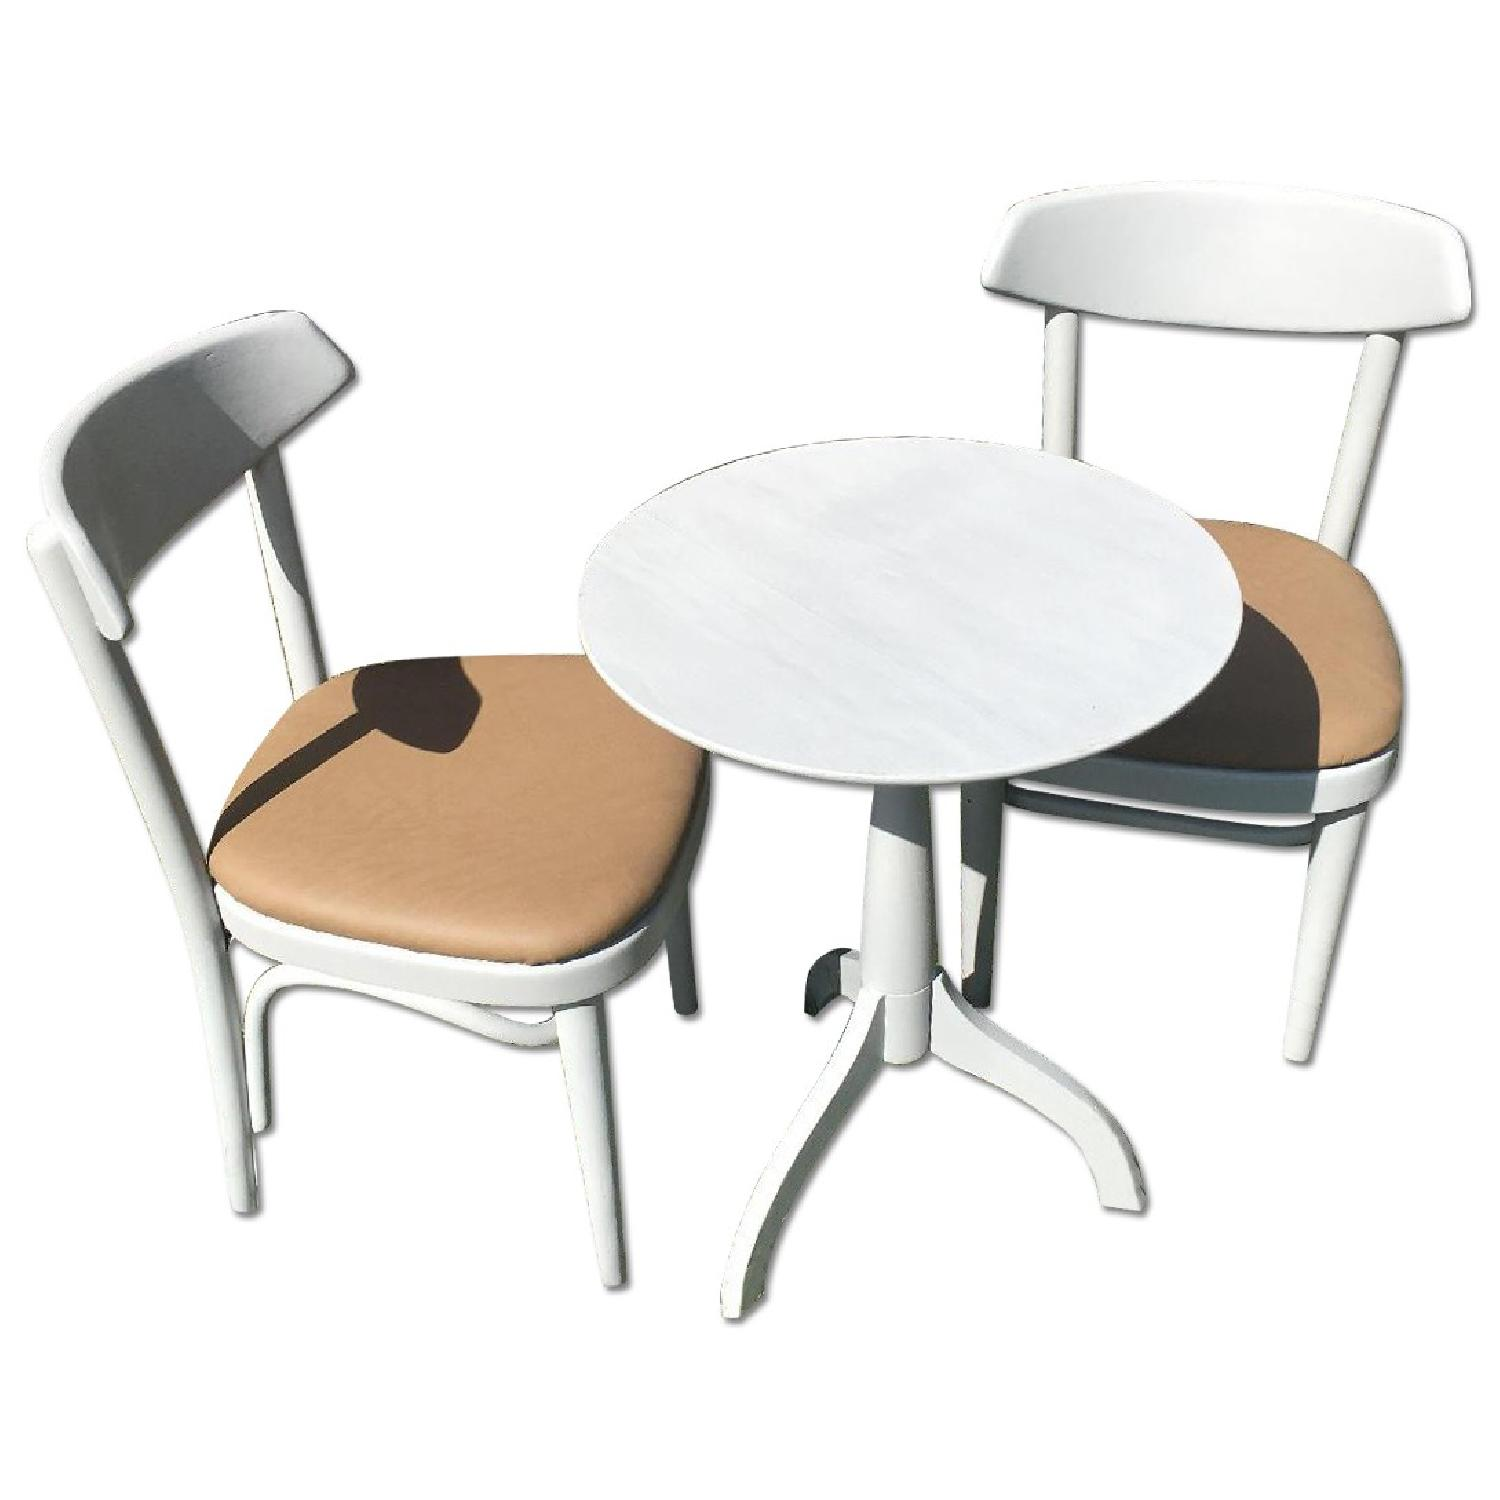 Dining Table w/ 2 Chairs - image-0